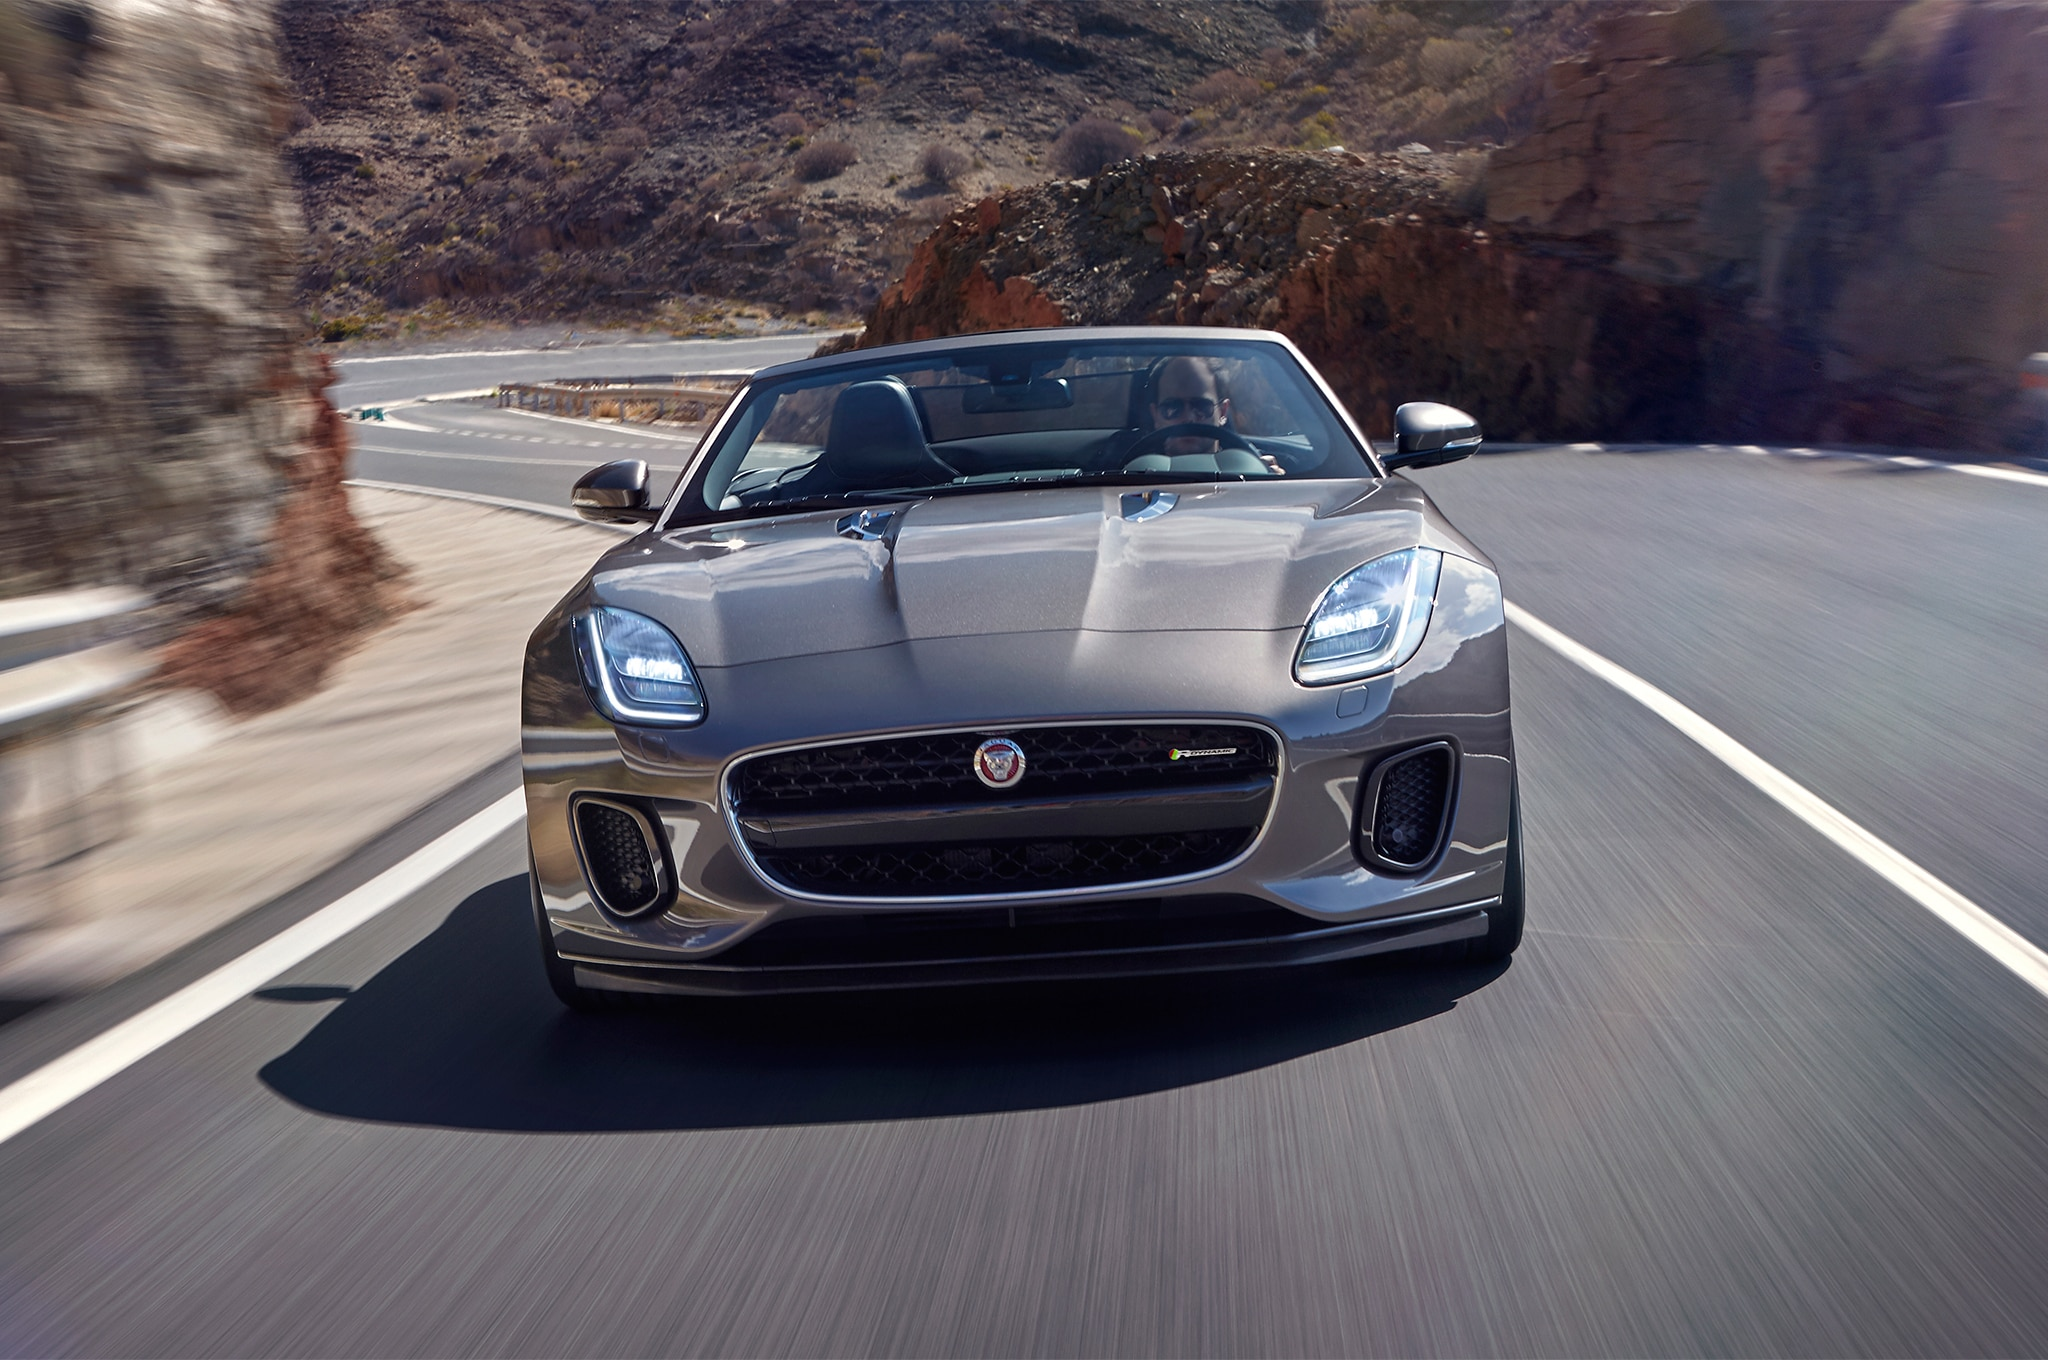 2018-Jaguar-F-Type-four-cylinder-front-end-in-motion-02-1-9